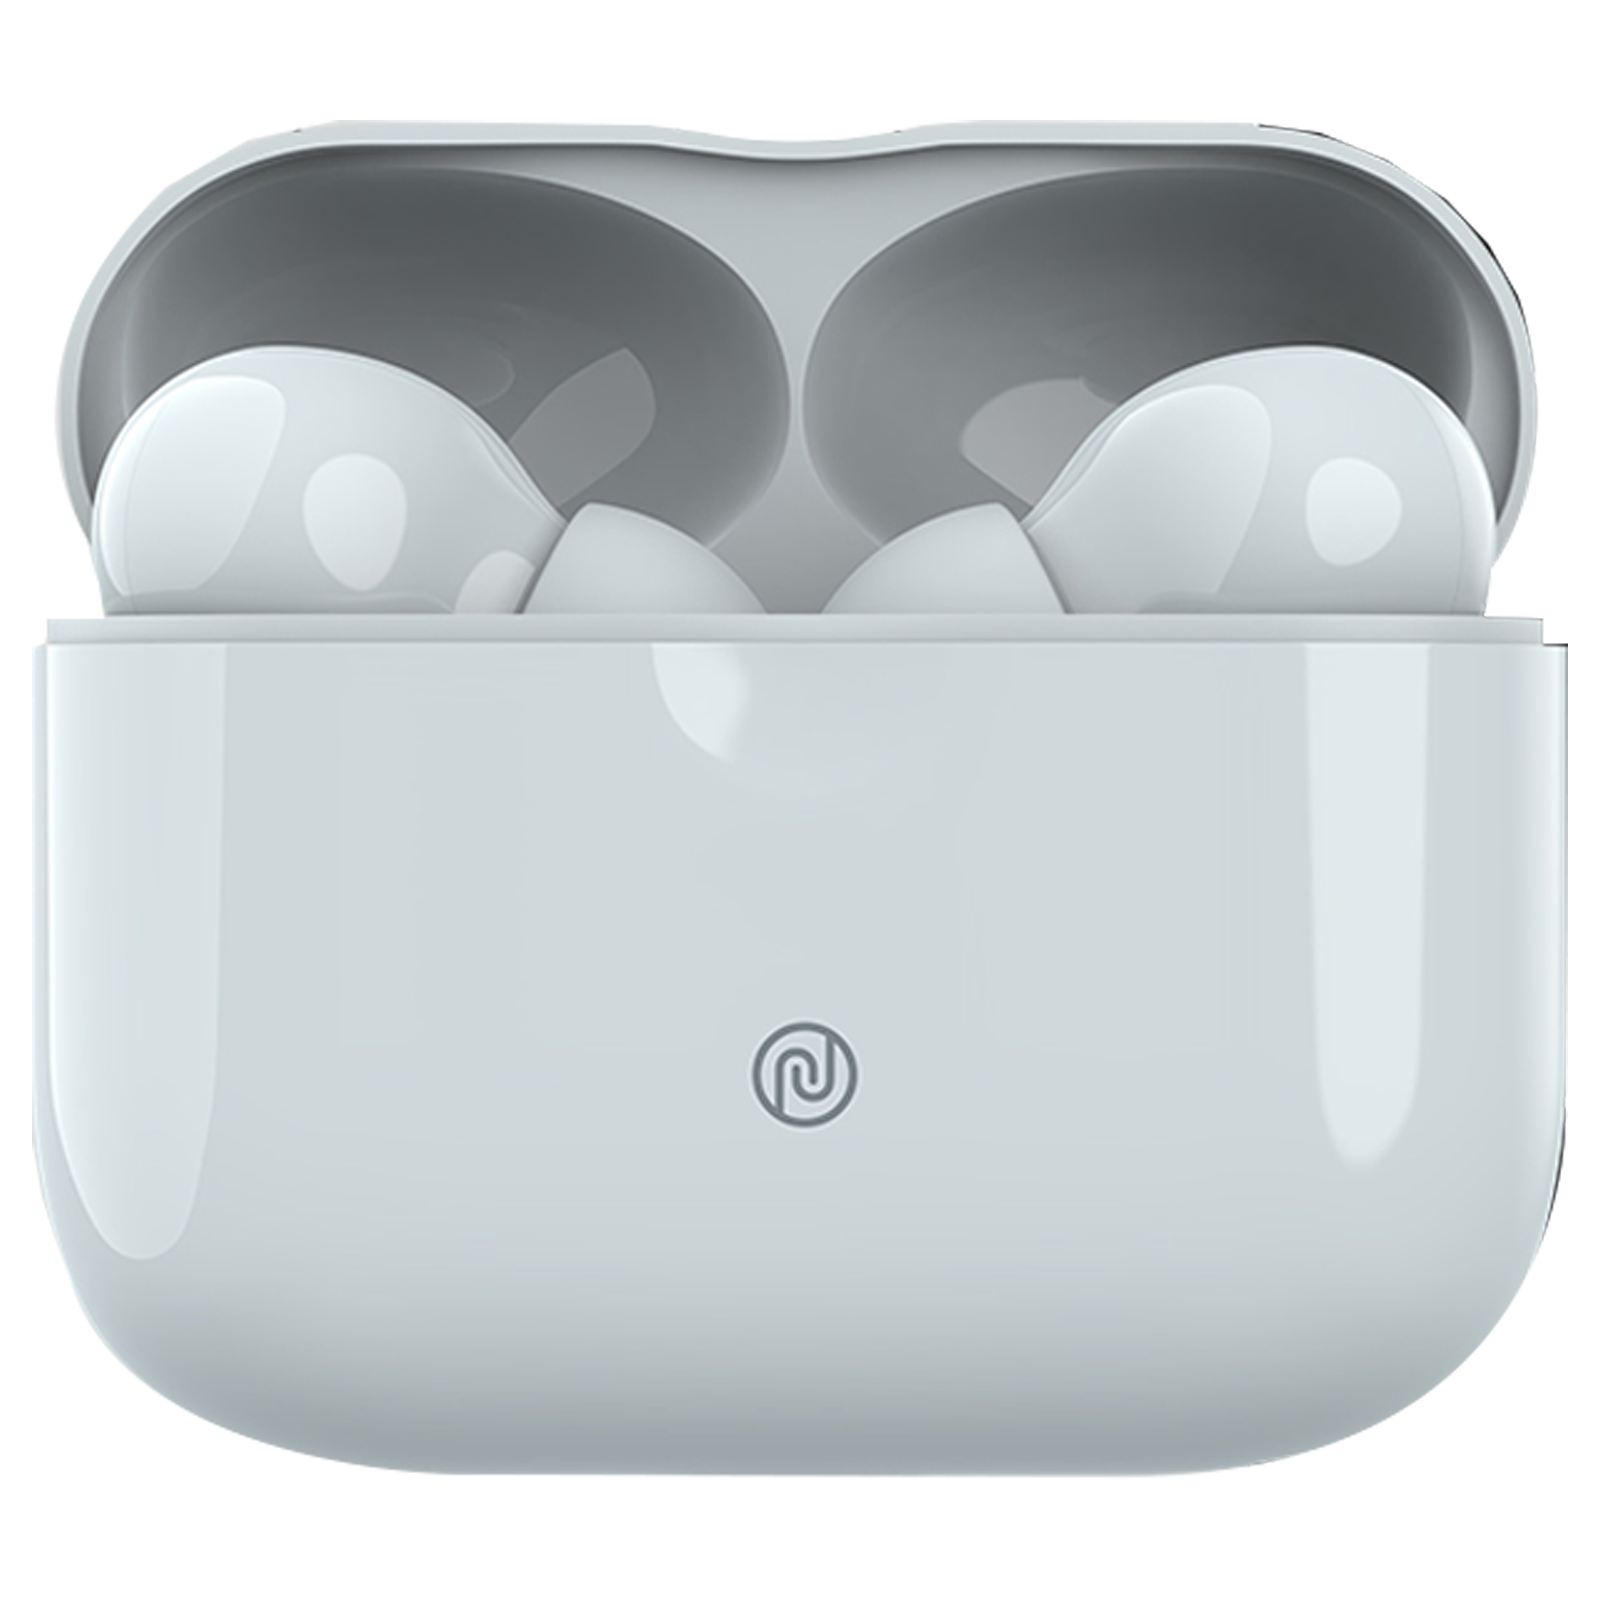 Noise Air Buds+ In-Ear Truly Wireless Earbuds with Mic (Bluetooth 5.0, Hyper Sync Technology, AUD-HDPHN-AIRBUDS+, Grey)_1